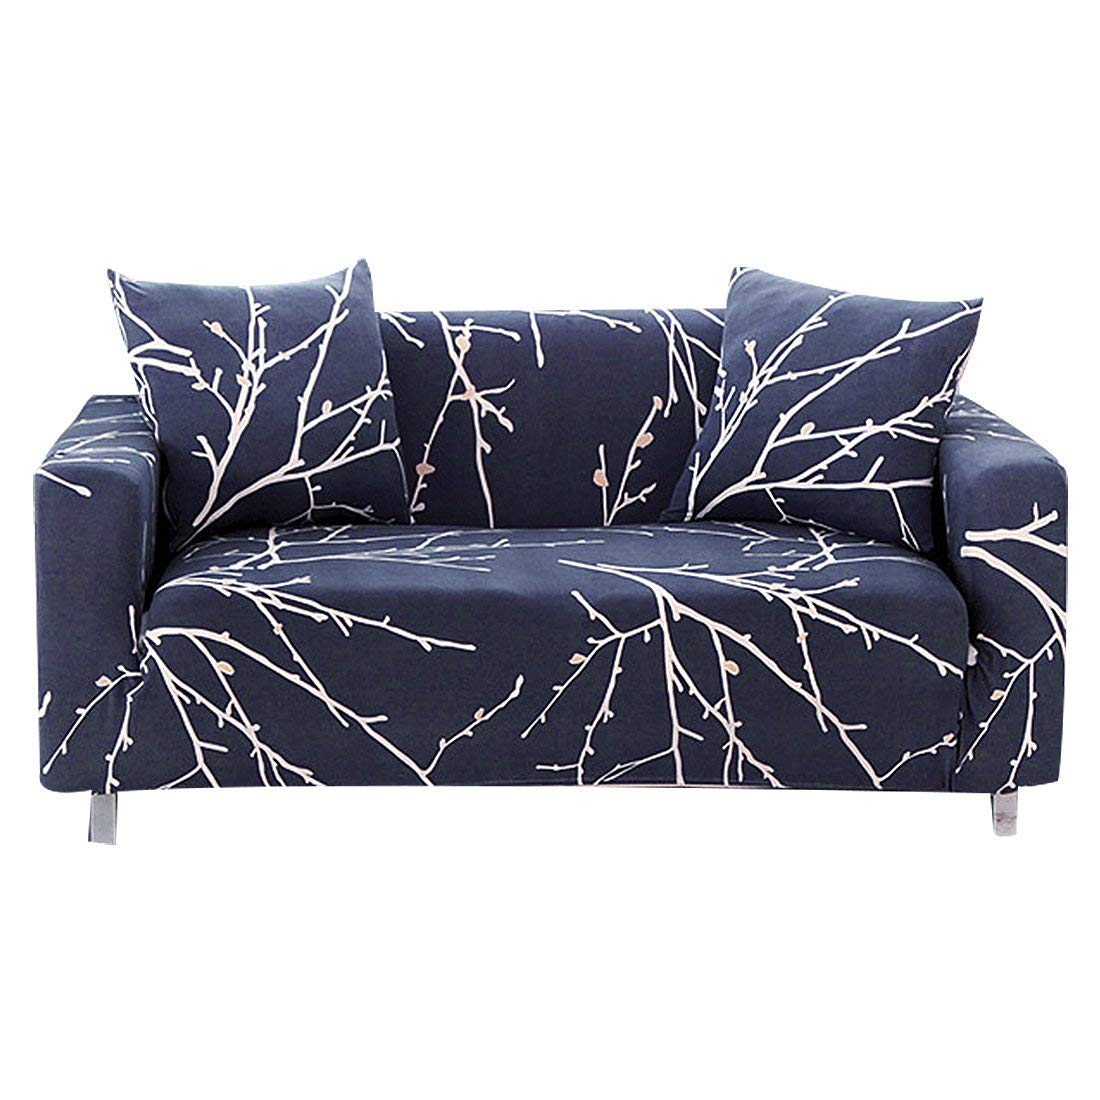 Excellent Enzer Stretch Sofa Slipcover Flower Bird Pattern Chari Loveseat Couch Cover Elastic Fabric Kids Pets Protector Navy Blue 1 Seater Tree Branch Spiritservingveterans Wood Chair Design Ideas Spiritservingveteransorg